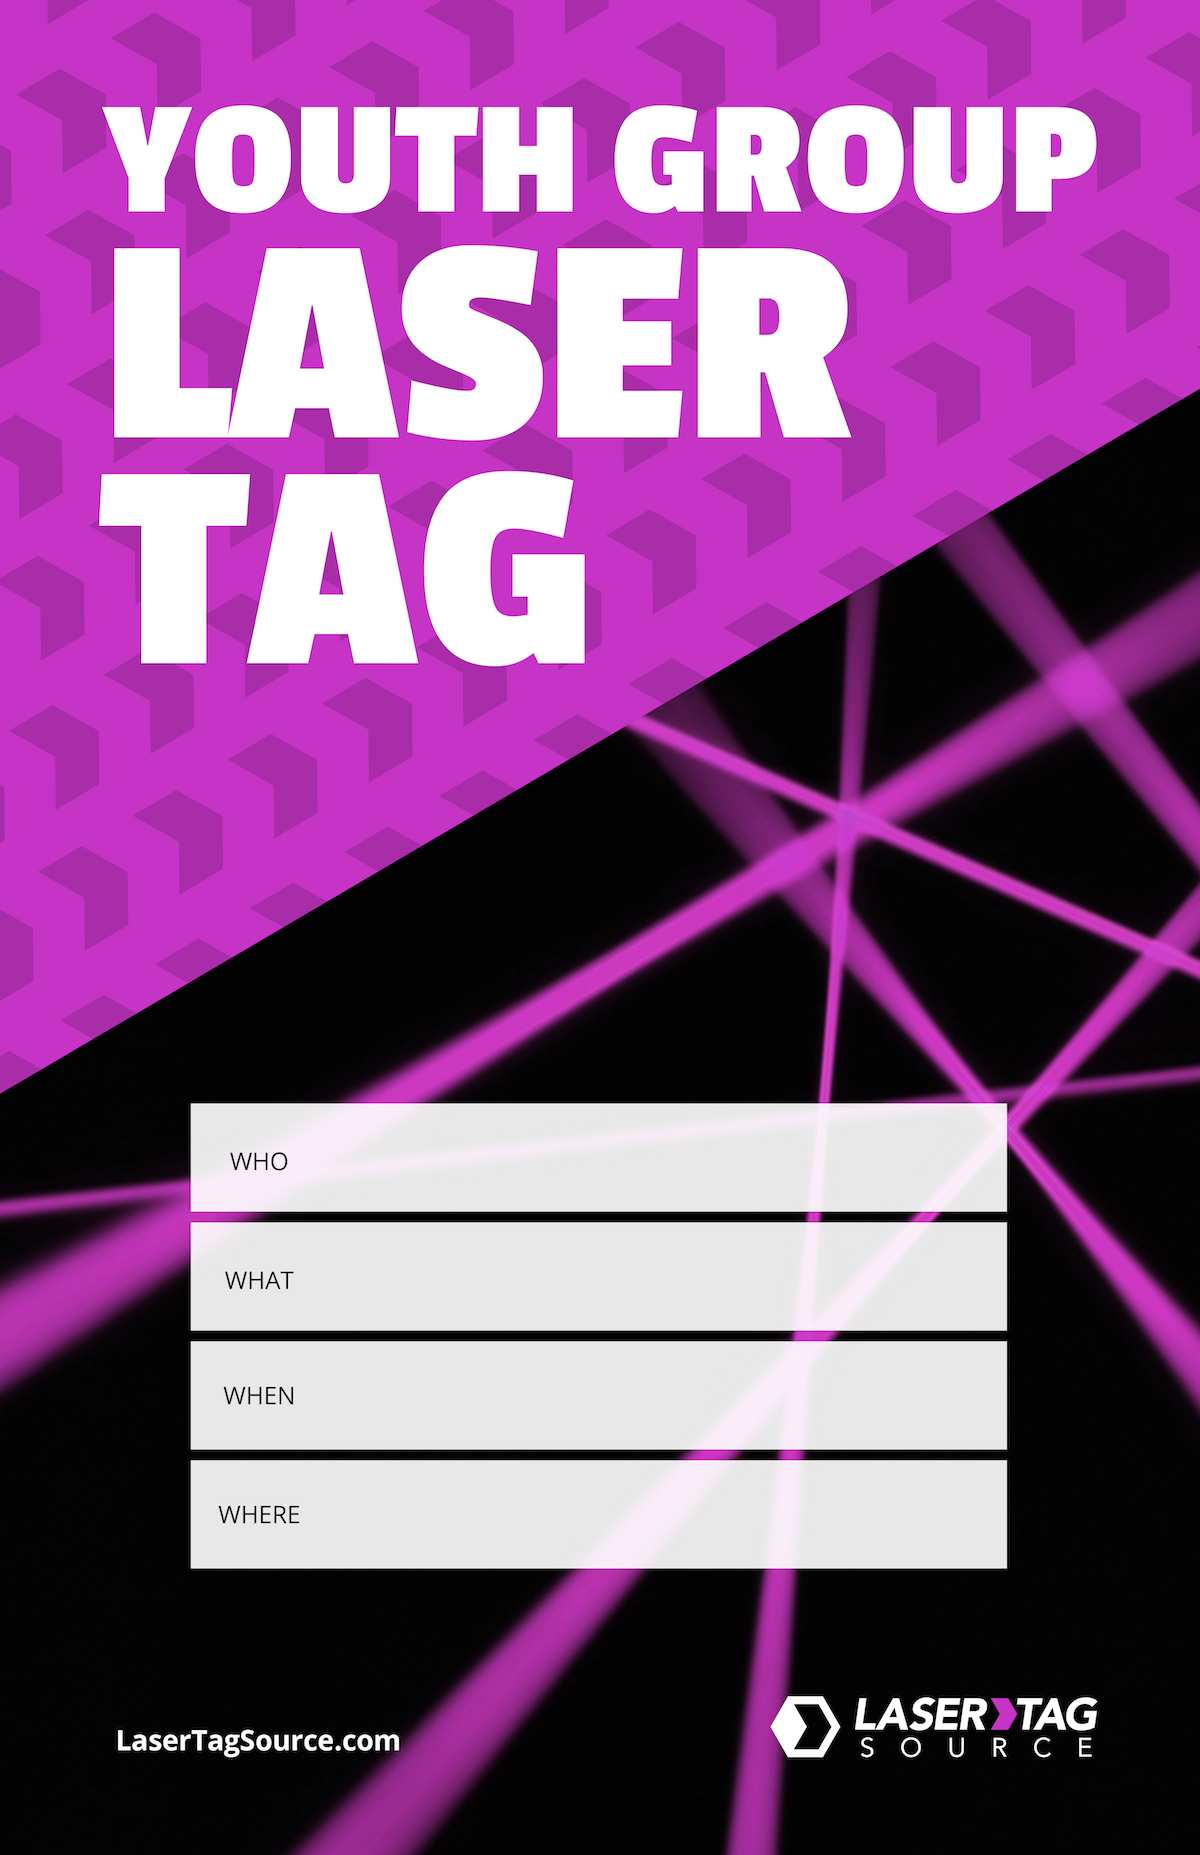 Resources Laser Tag Source